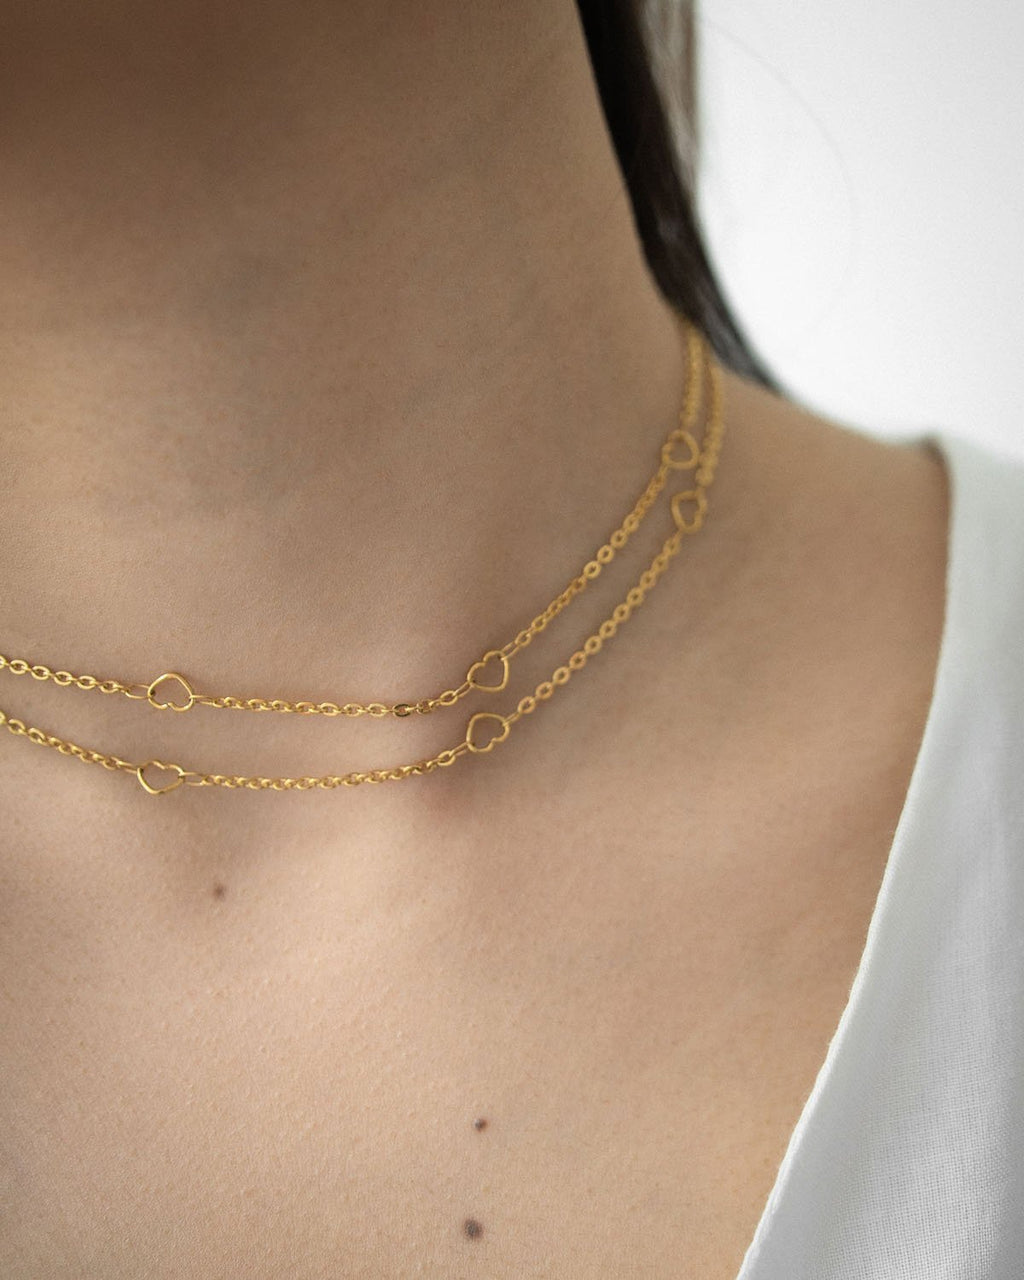 Gold chain necklace featuring cute tiny cut-out hearts @thehexad